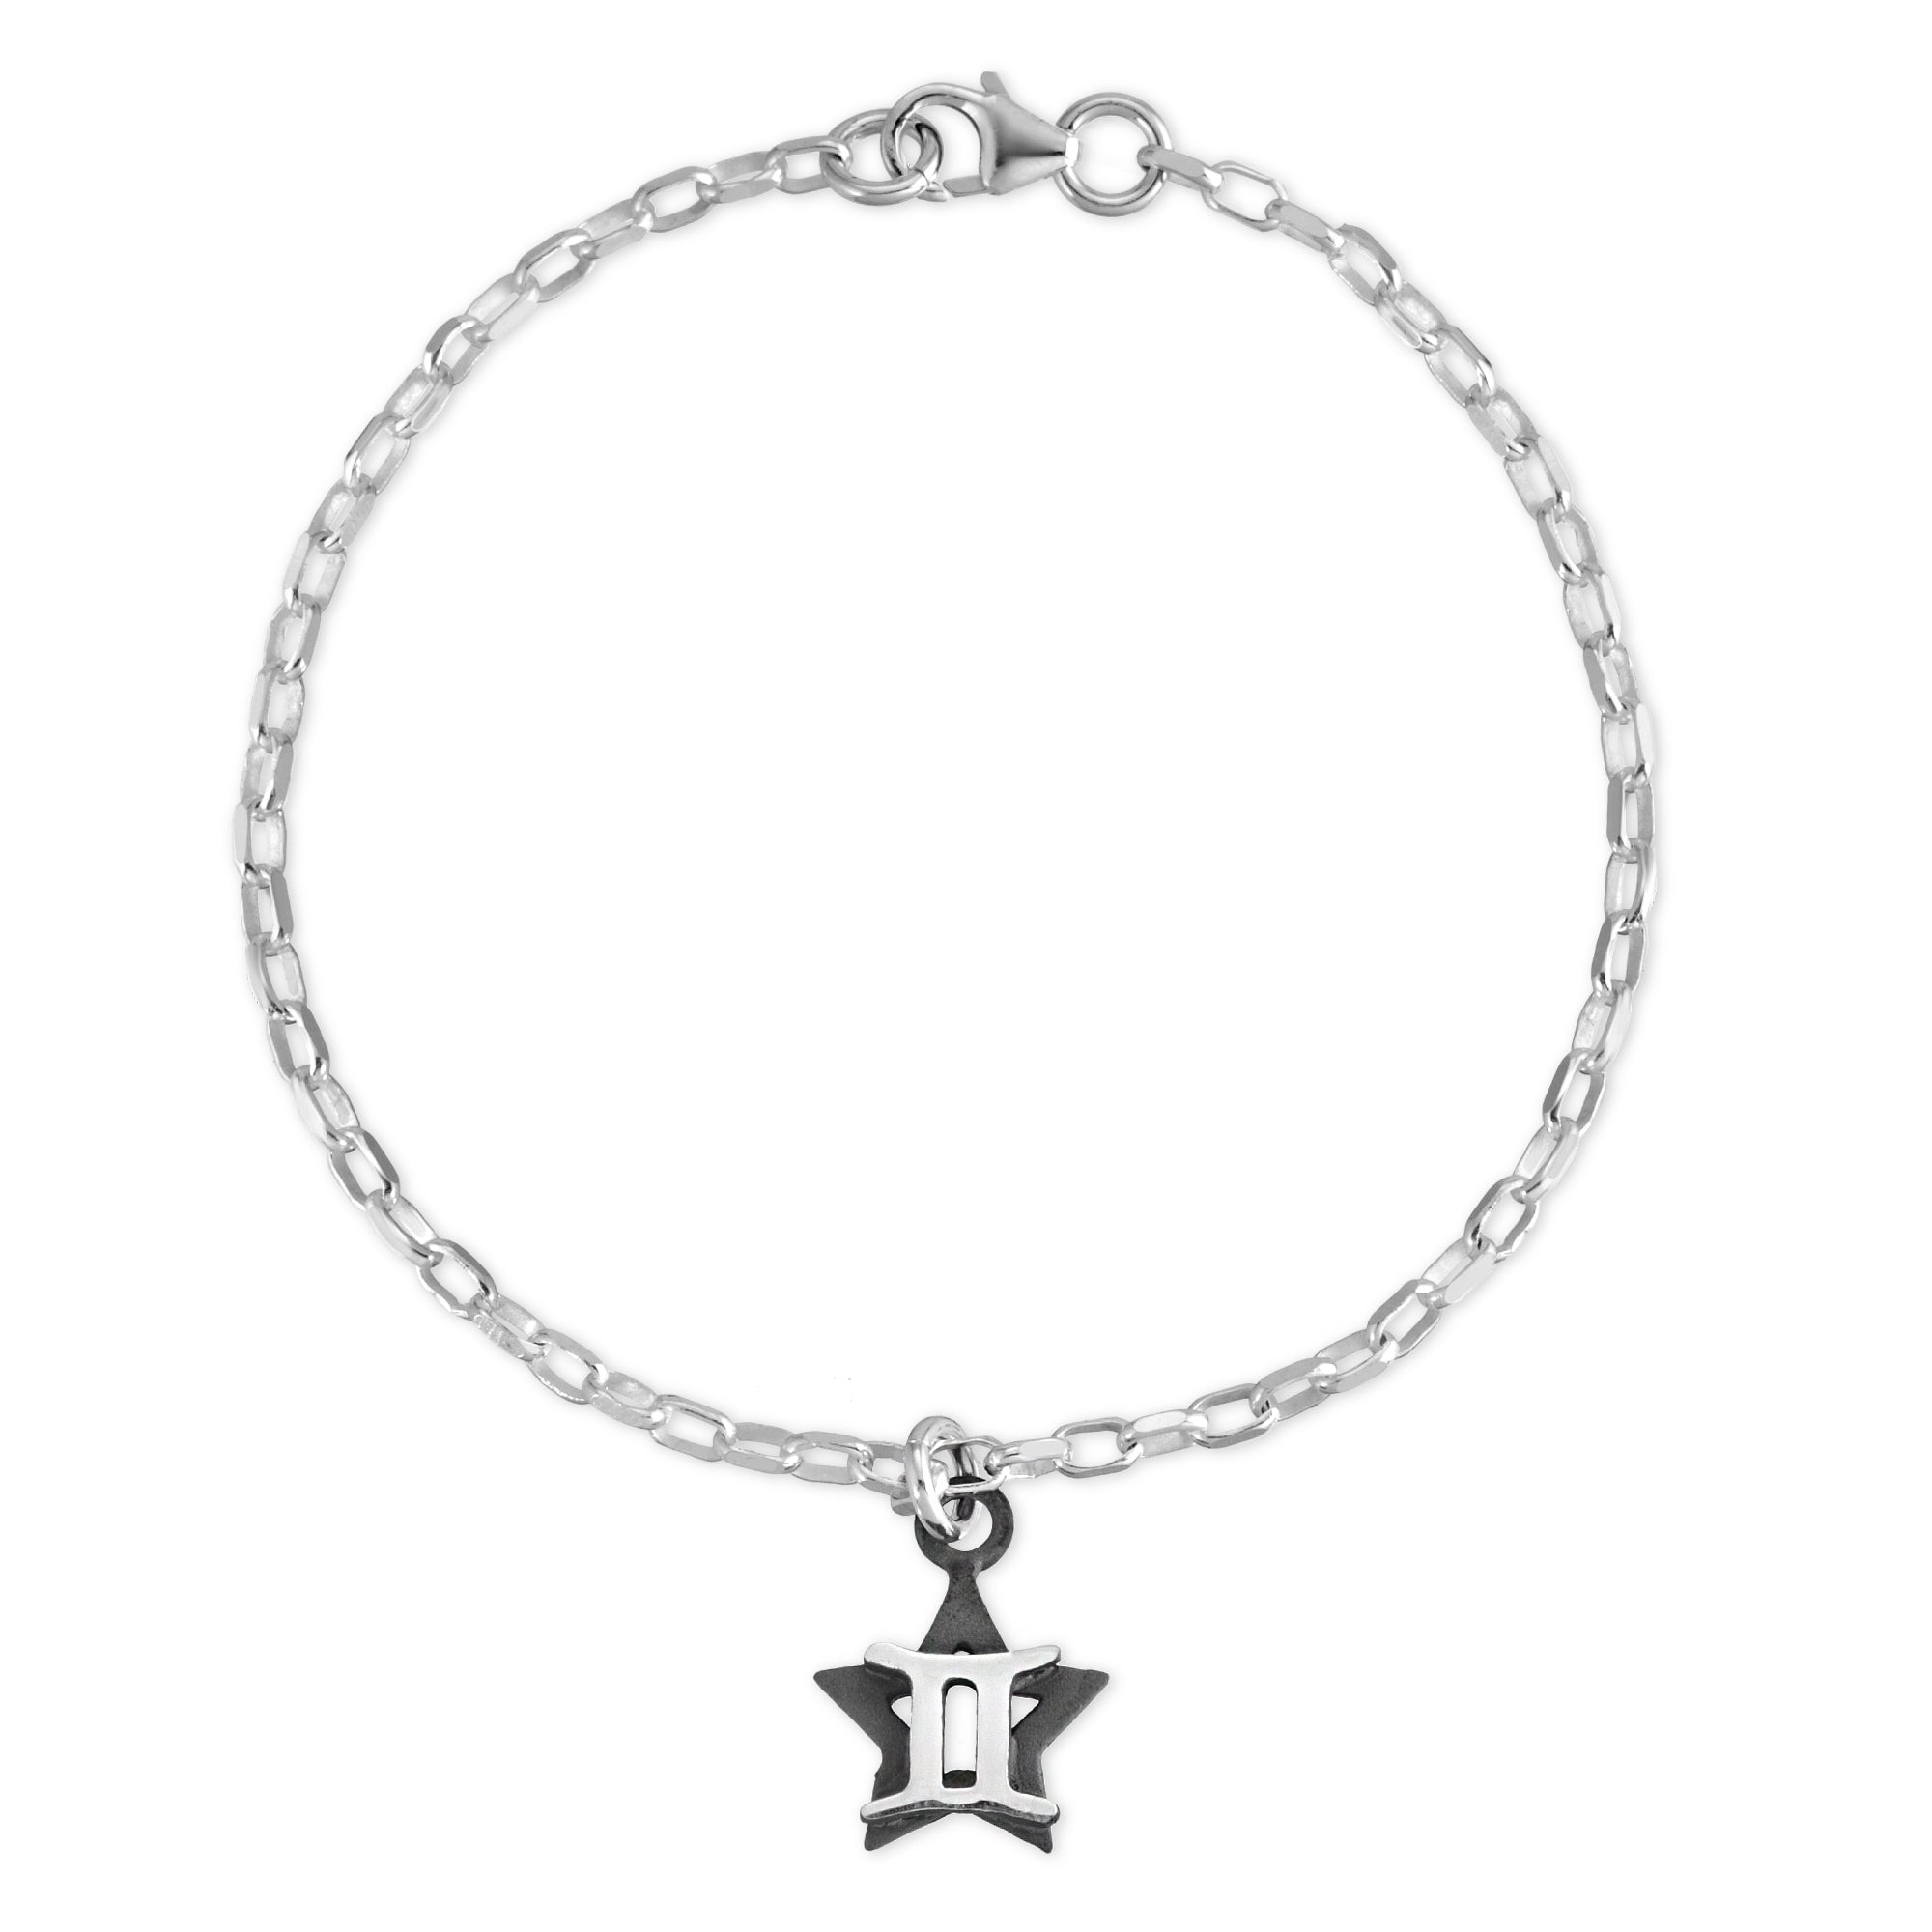 The W Brothers Sterling silver zodiac horoscope Gemini charm bracelet crafted to perfection in premium 925 Sterling silver, available in silver, real 18k gold or rose gold layering. Shop your star-signs at thewbros.com